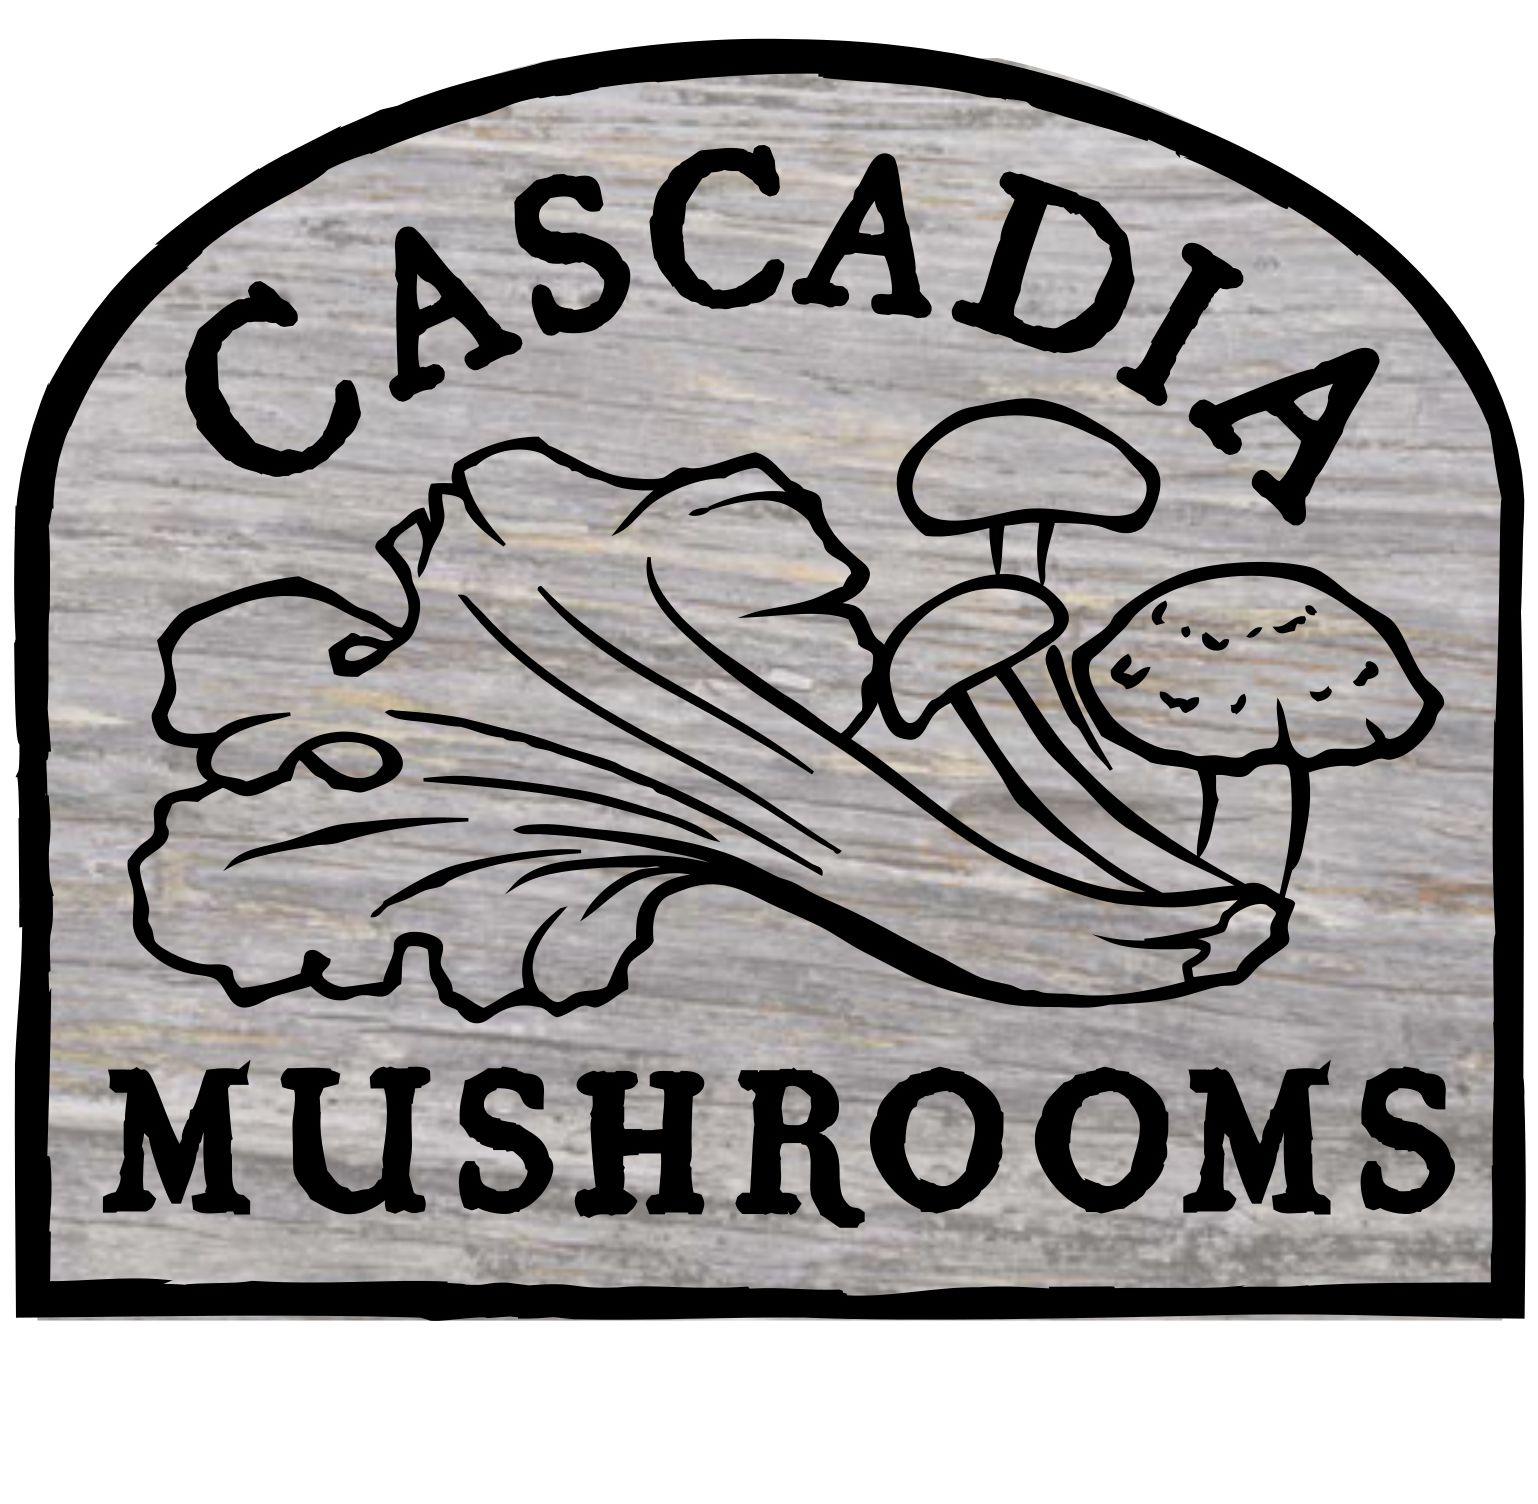 Cascadia Mushrooms